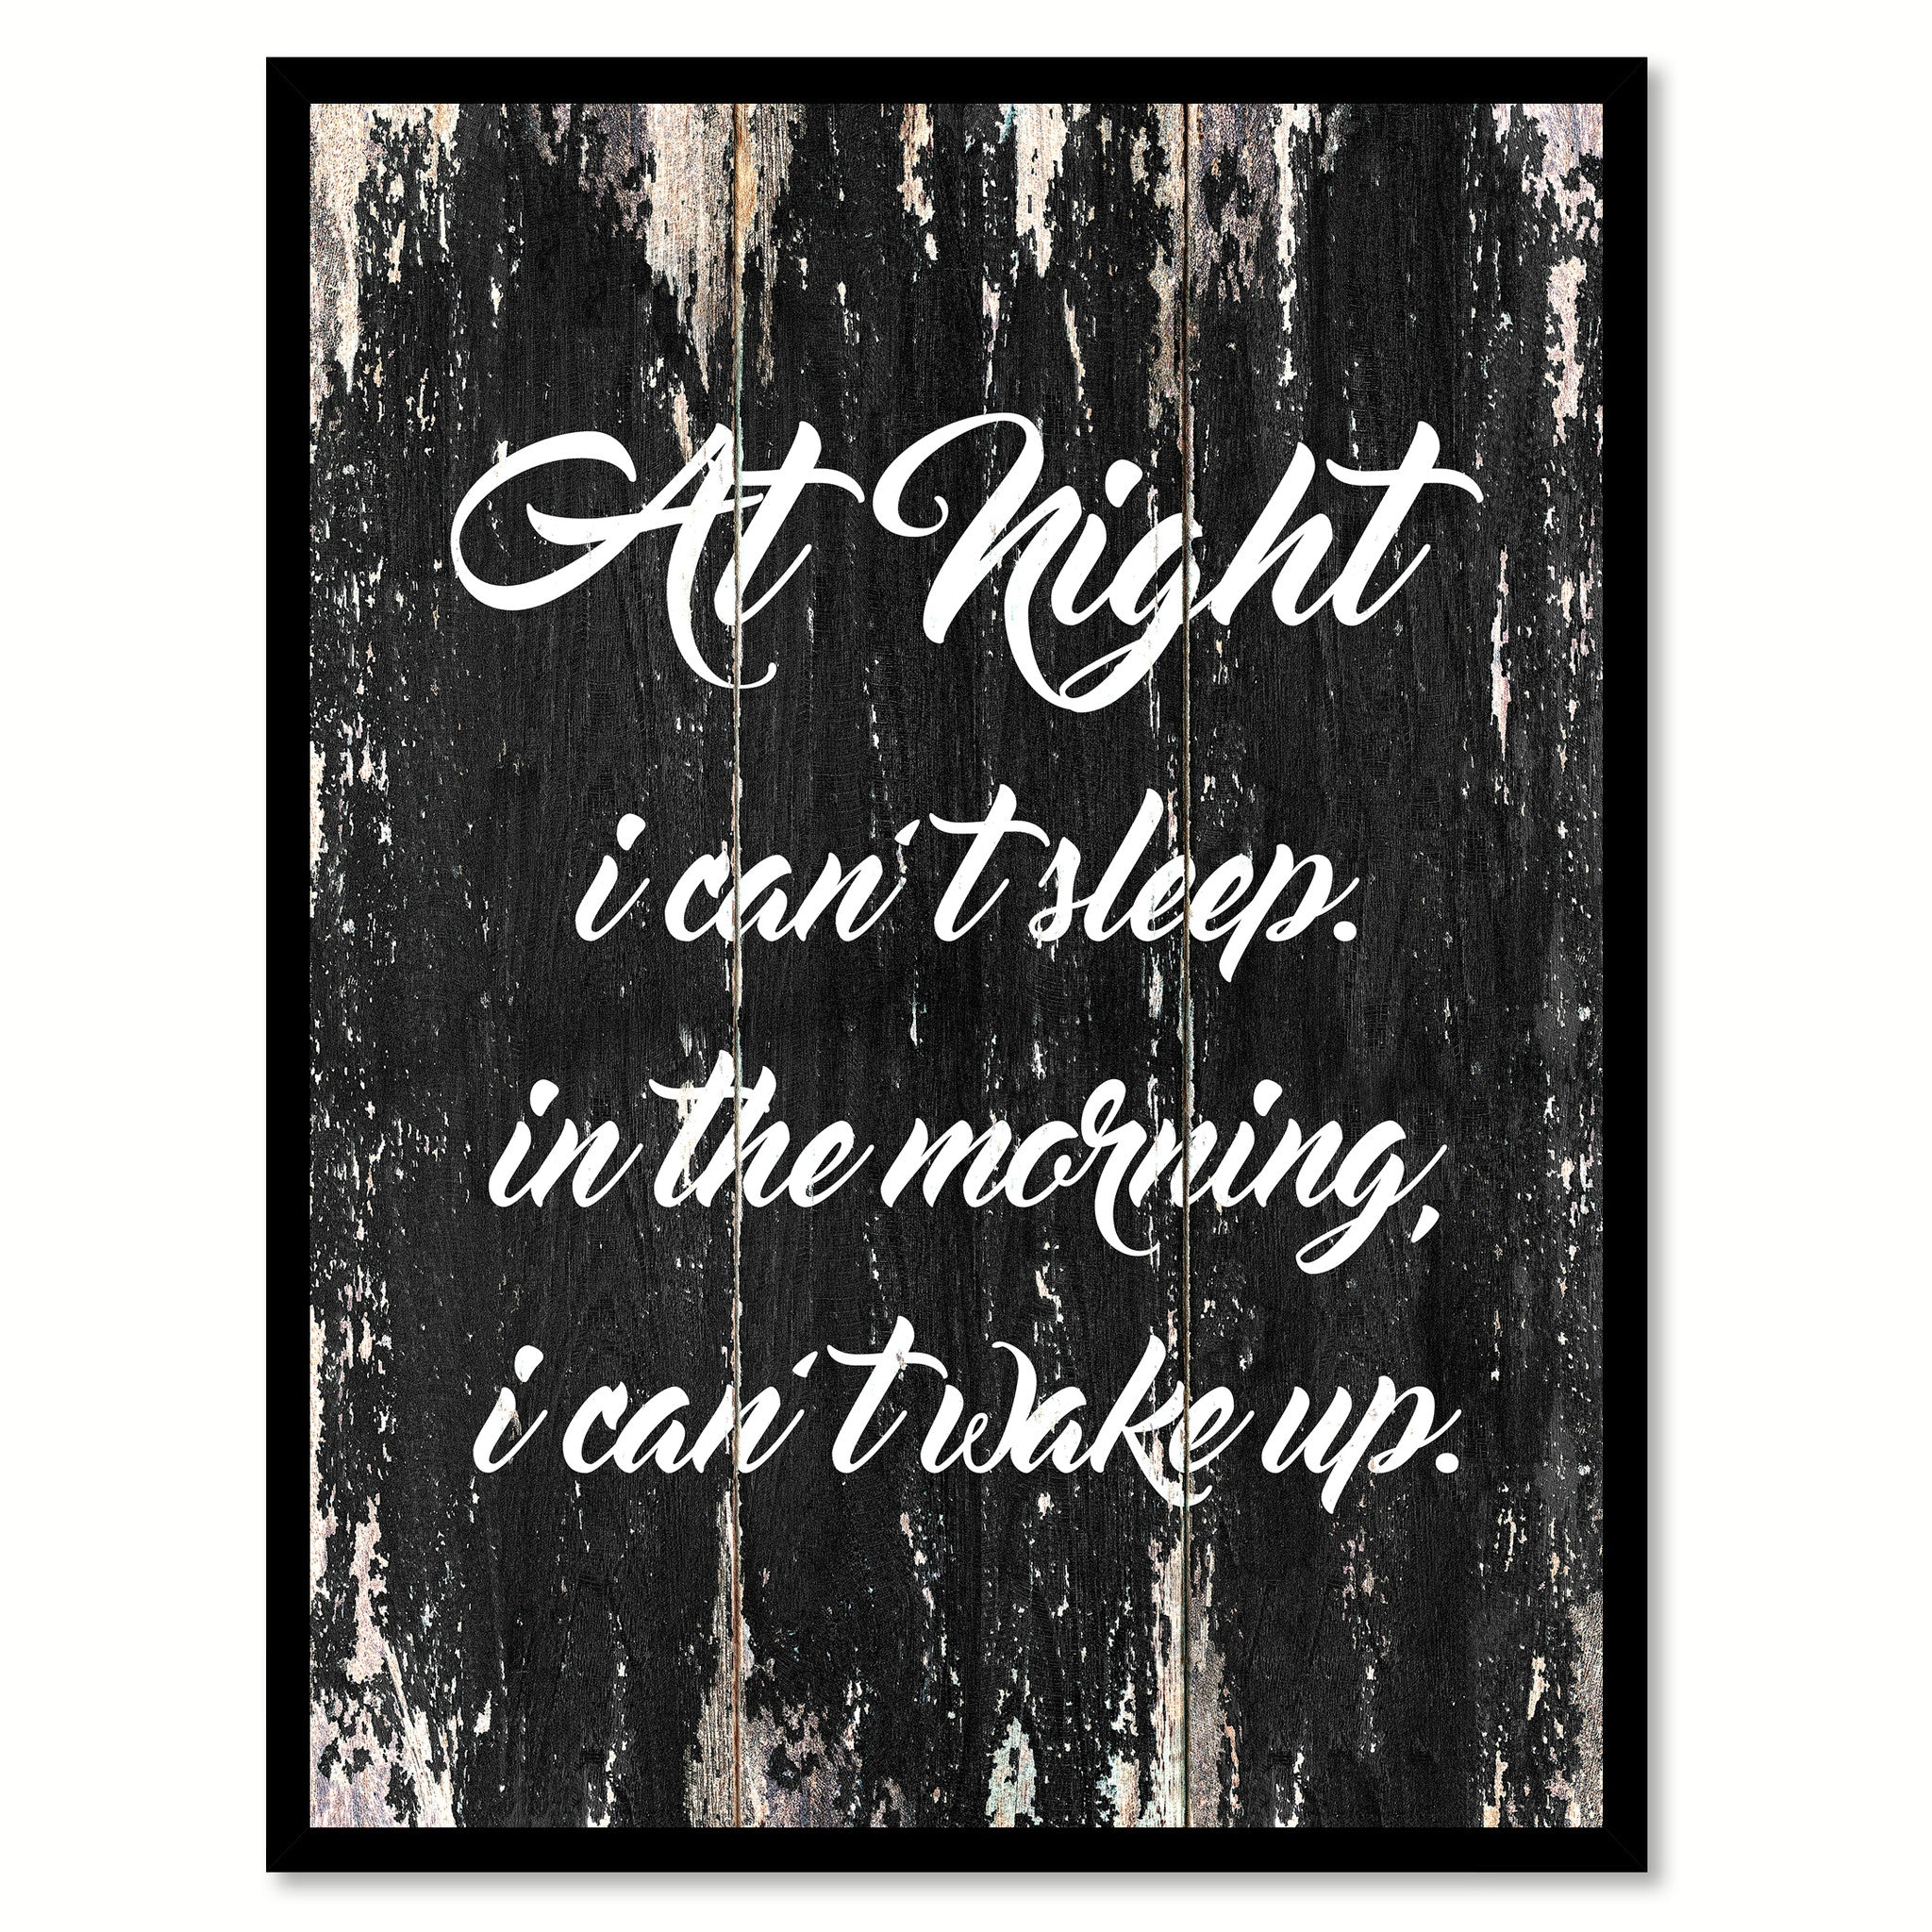 At night I can't sleep in the morning I can't wake up Funny Quote Saying Canvas Print with Picture Frame Home Decor Wall Art